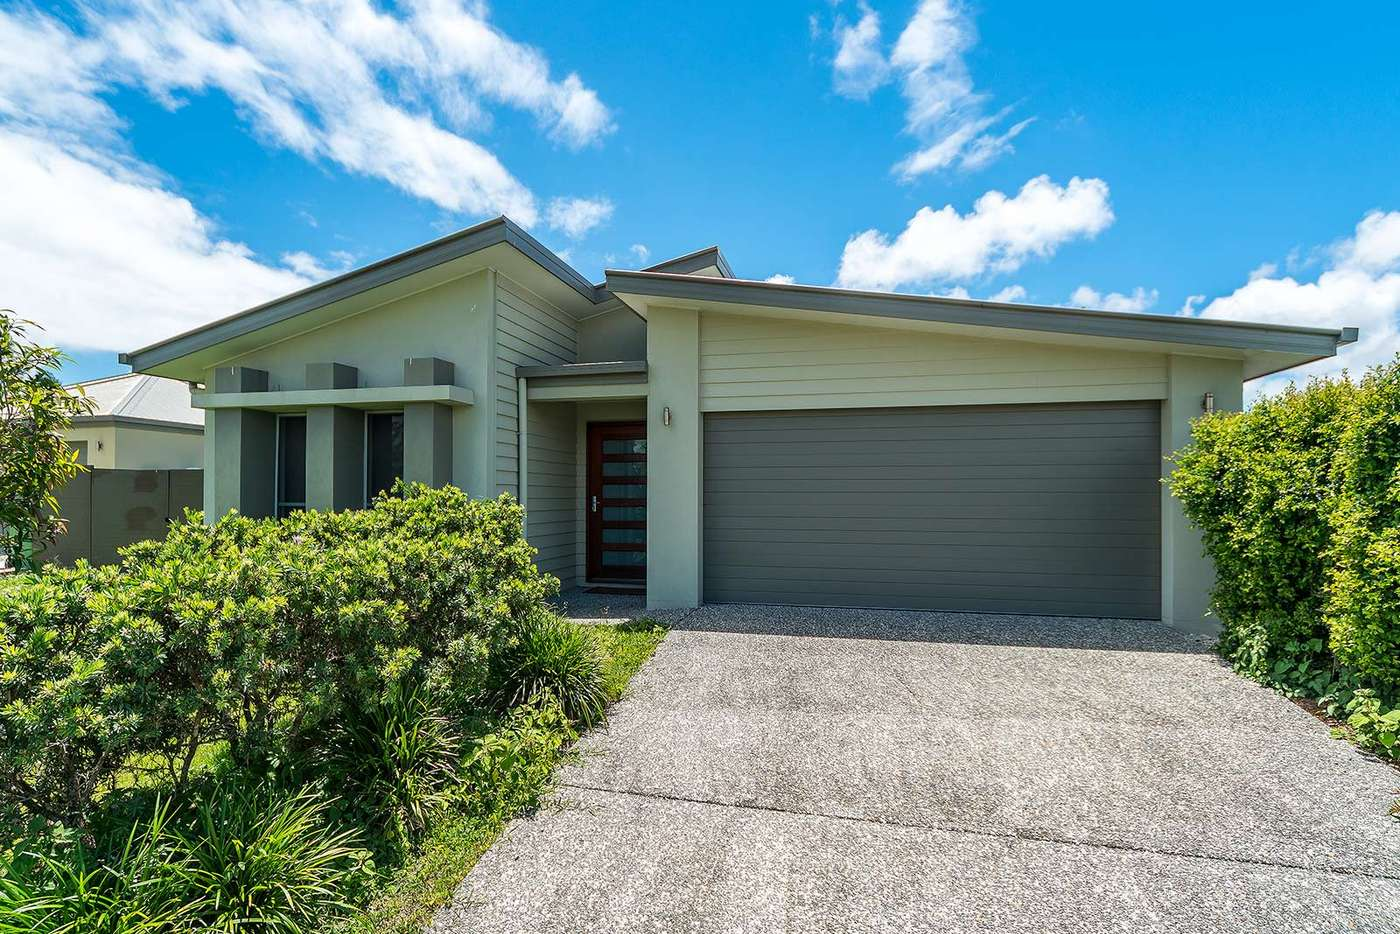 Main view of Homely house listing, 4 Casuarina Way, Helensvale QLD 4212